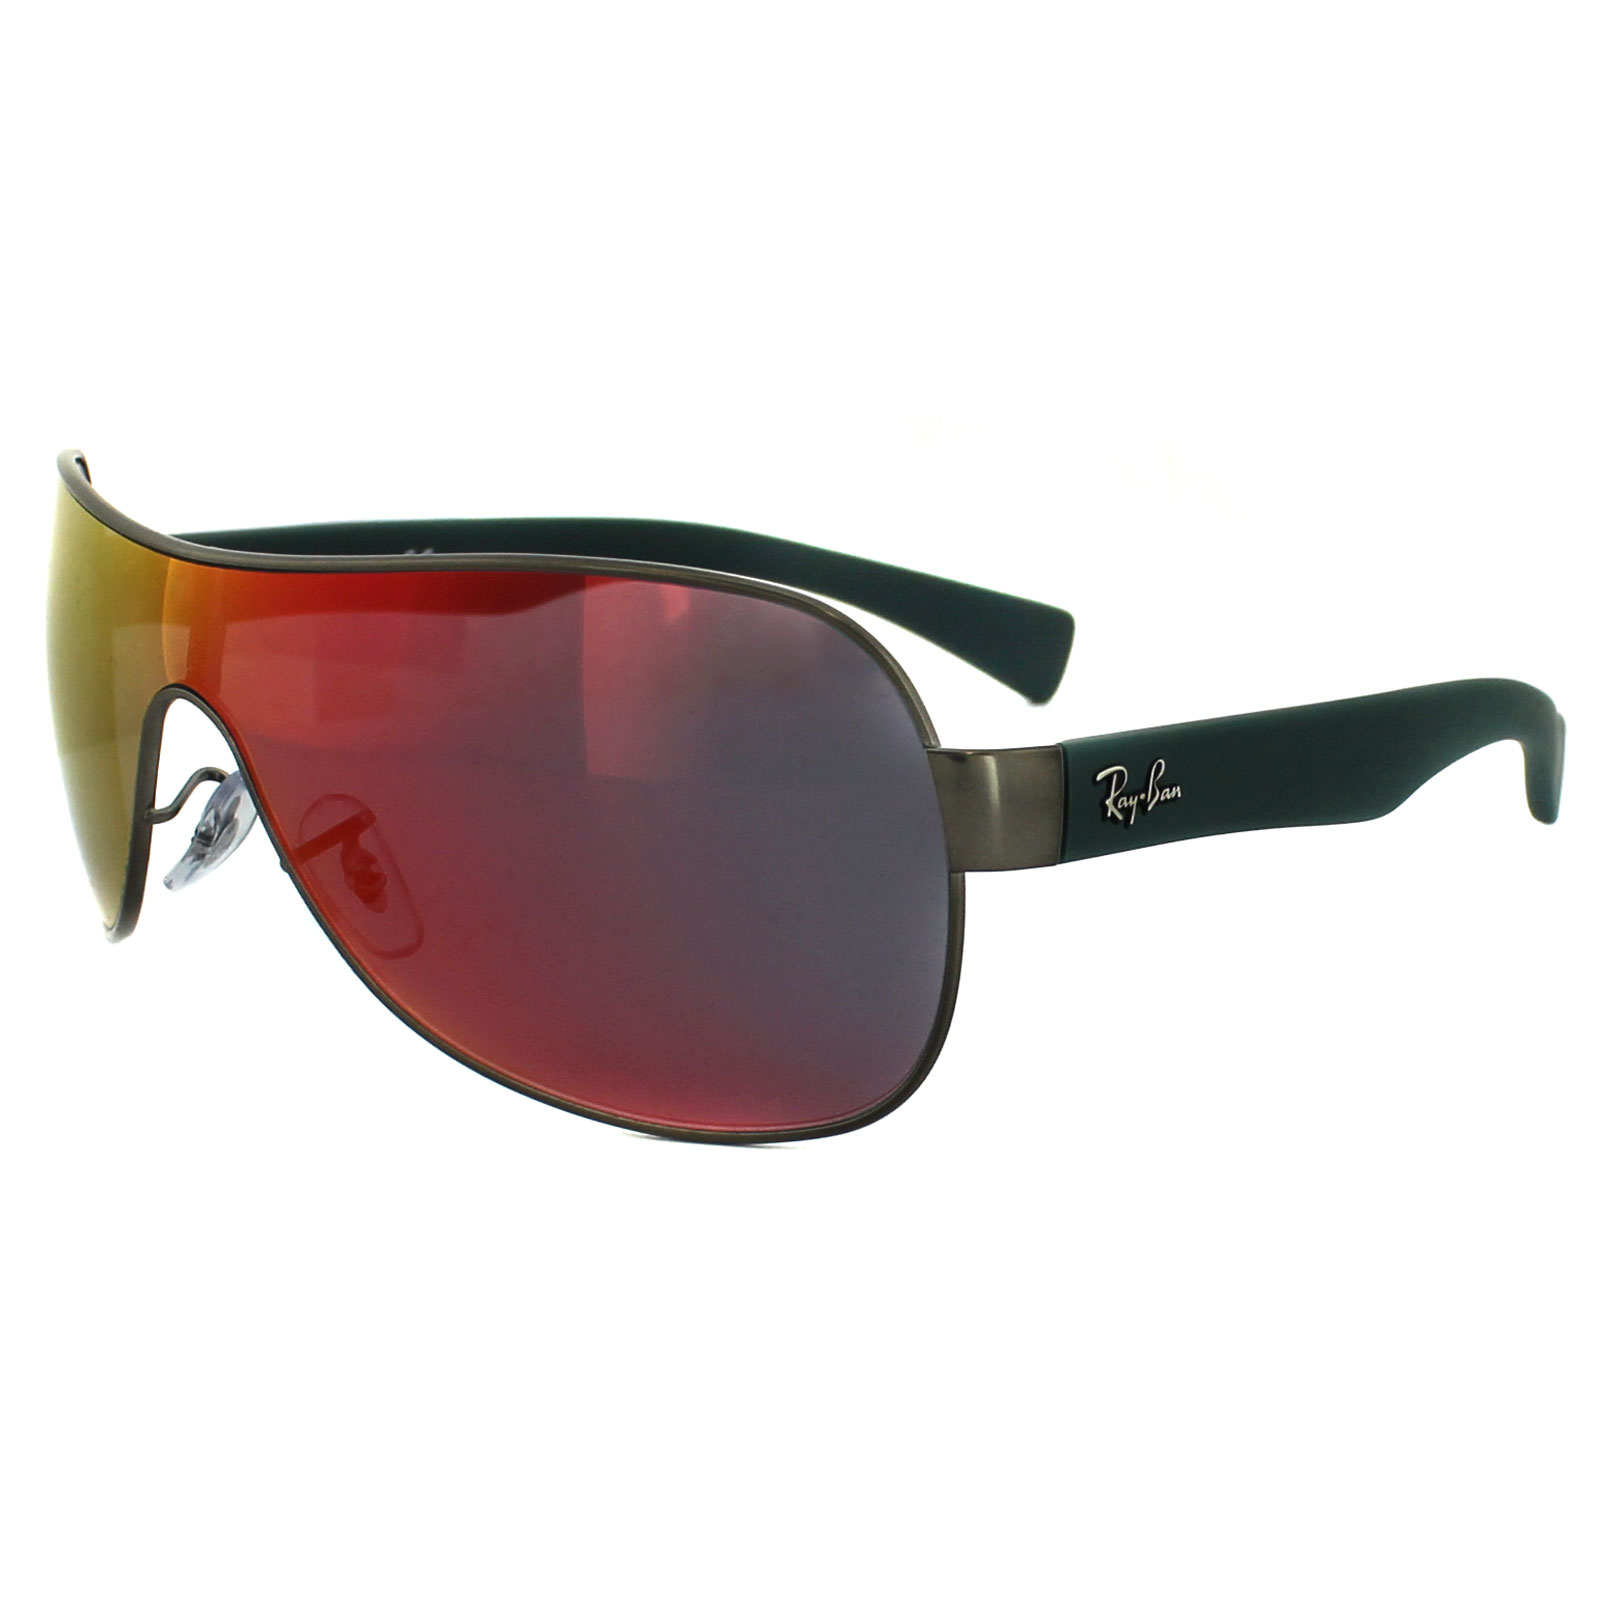 cheap ray ban 3471 sunglasses discounted sunglasses